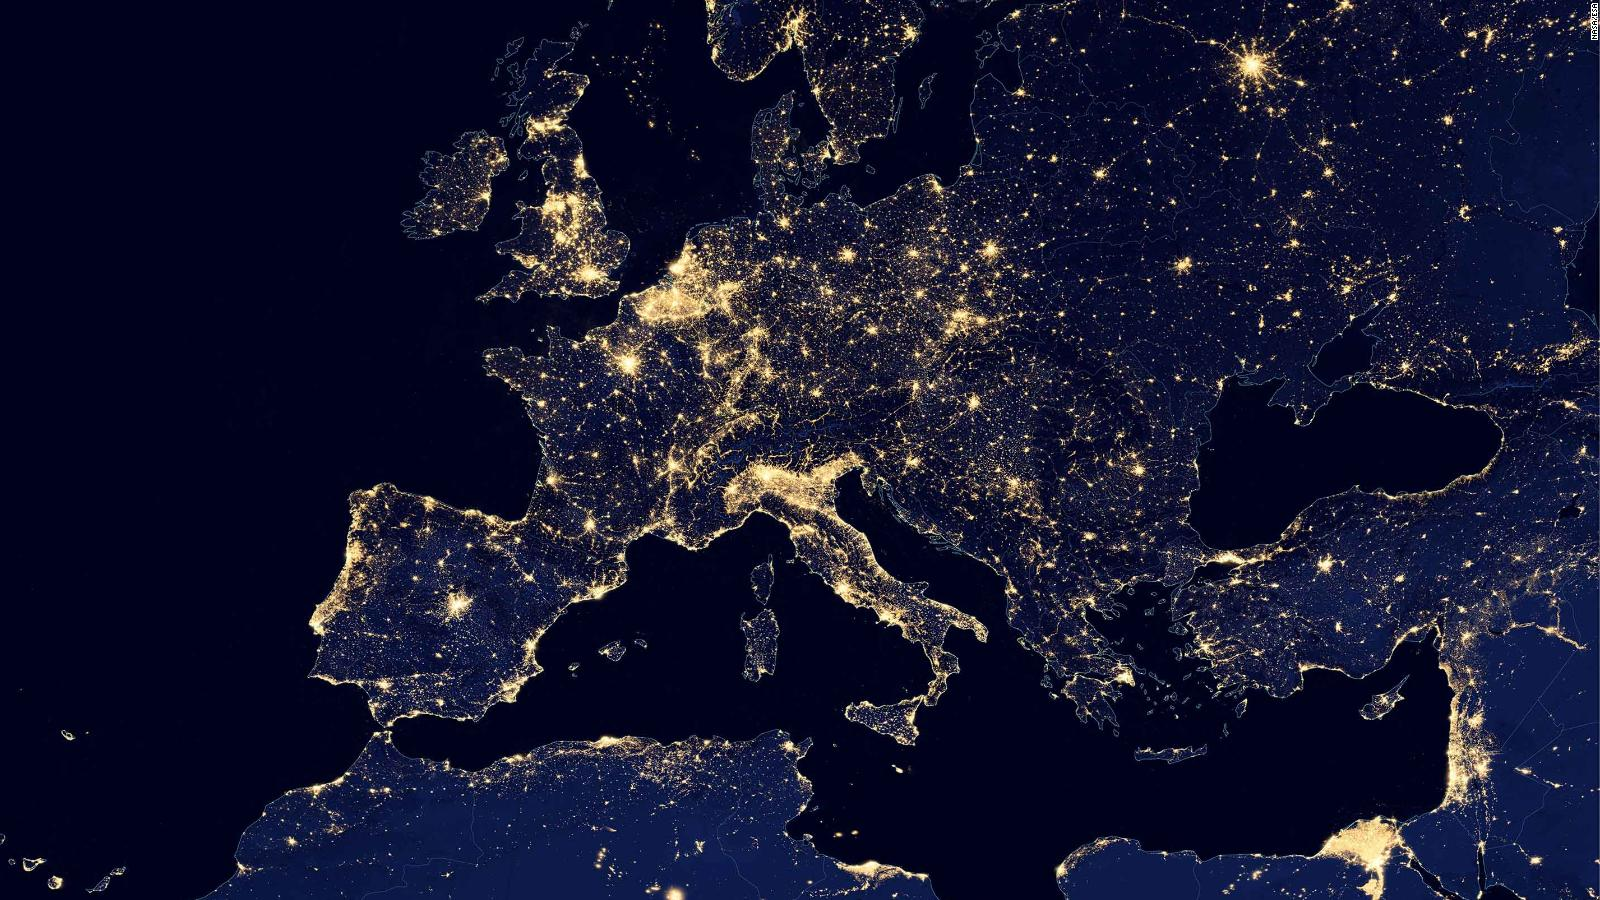 Loss of the night light pollution rising rapidly on a global scale loss of the night light pollution rising rapidly on a global scale cnn gumiabroncs Images